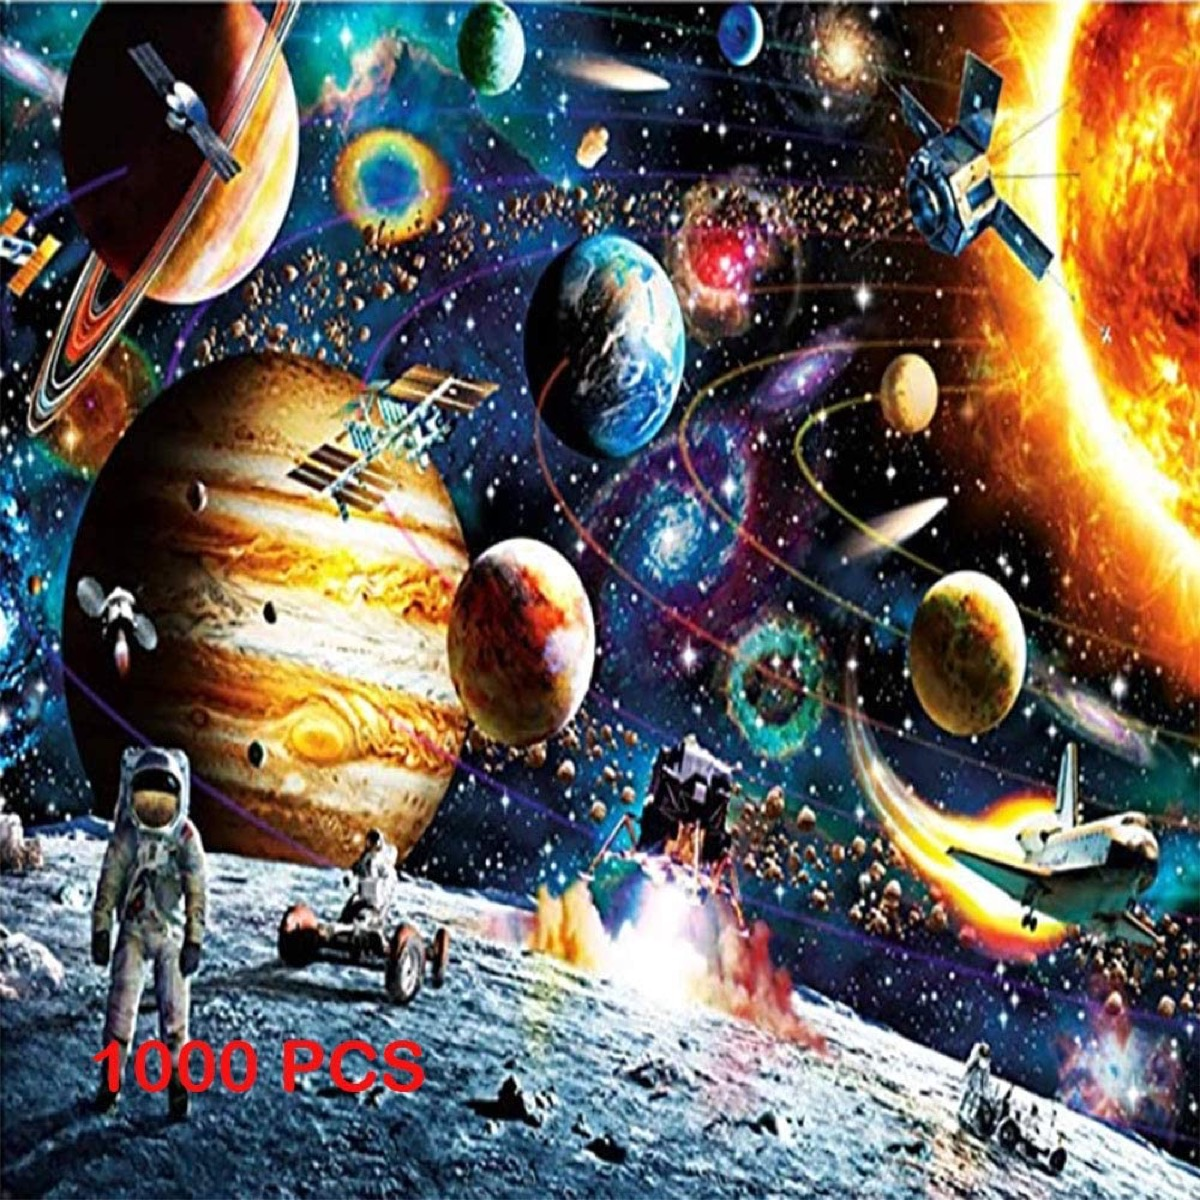 jigsaw puzzle with outer space theme